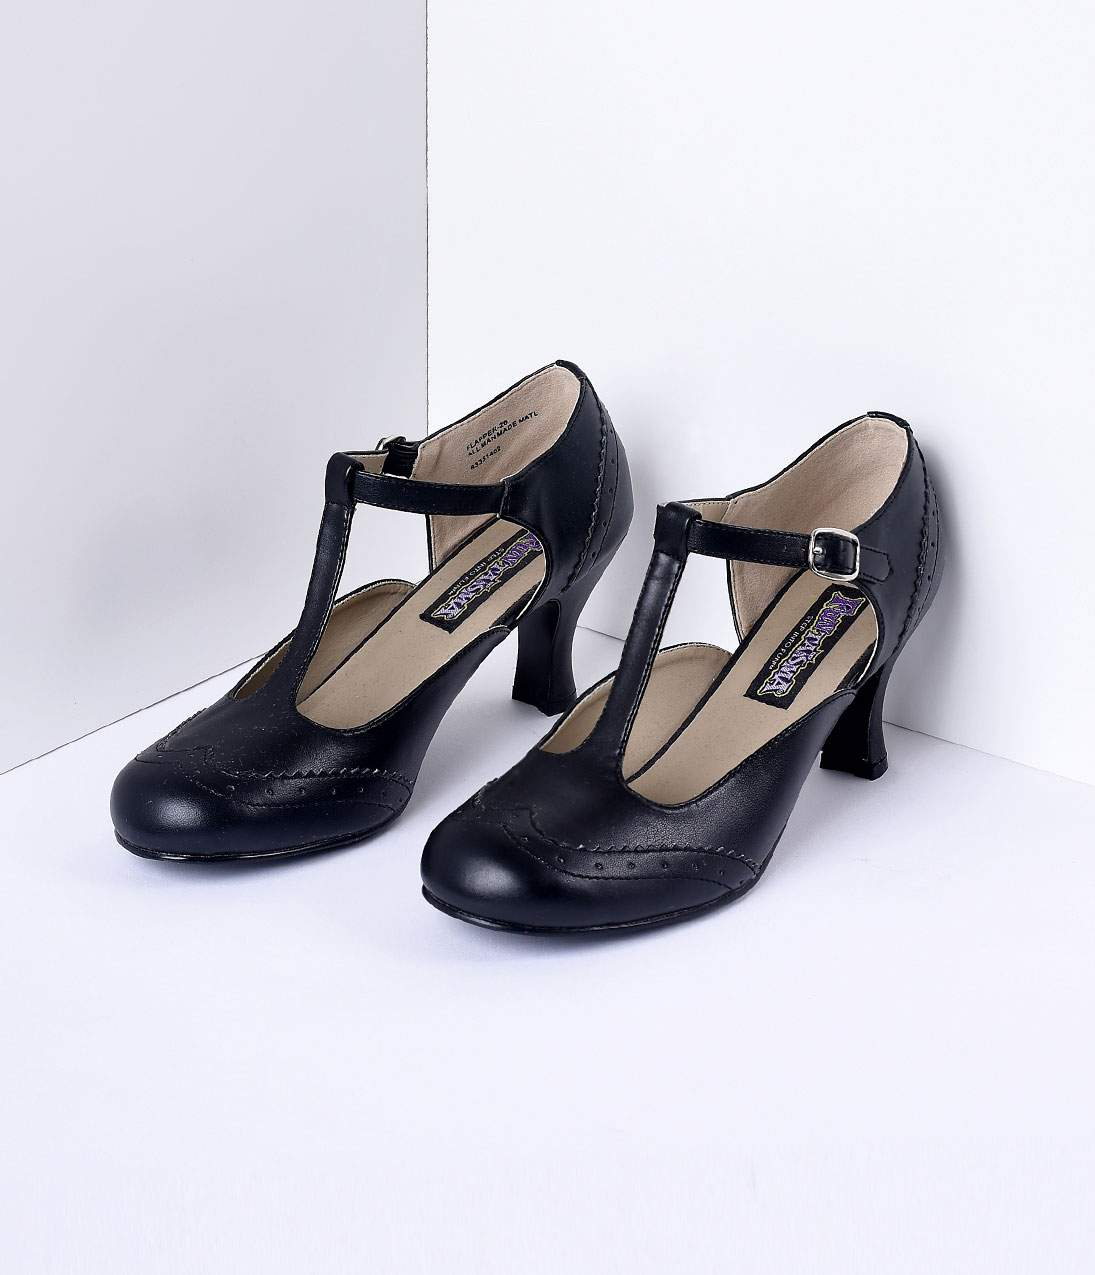 fecaf8b2fd7 1920s Style Shoes Black T-Strap Mary Jane Kitten Heels  58.00 AT  vintagedancer.com